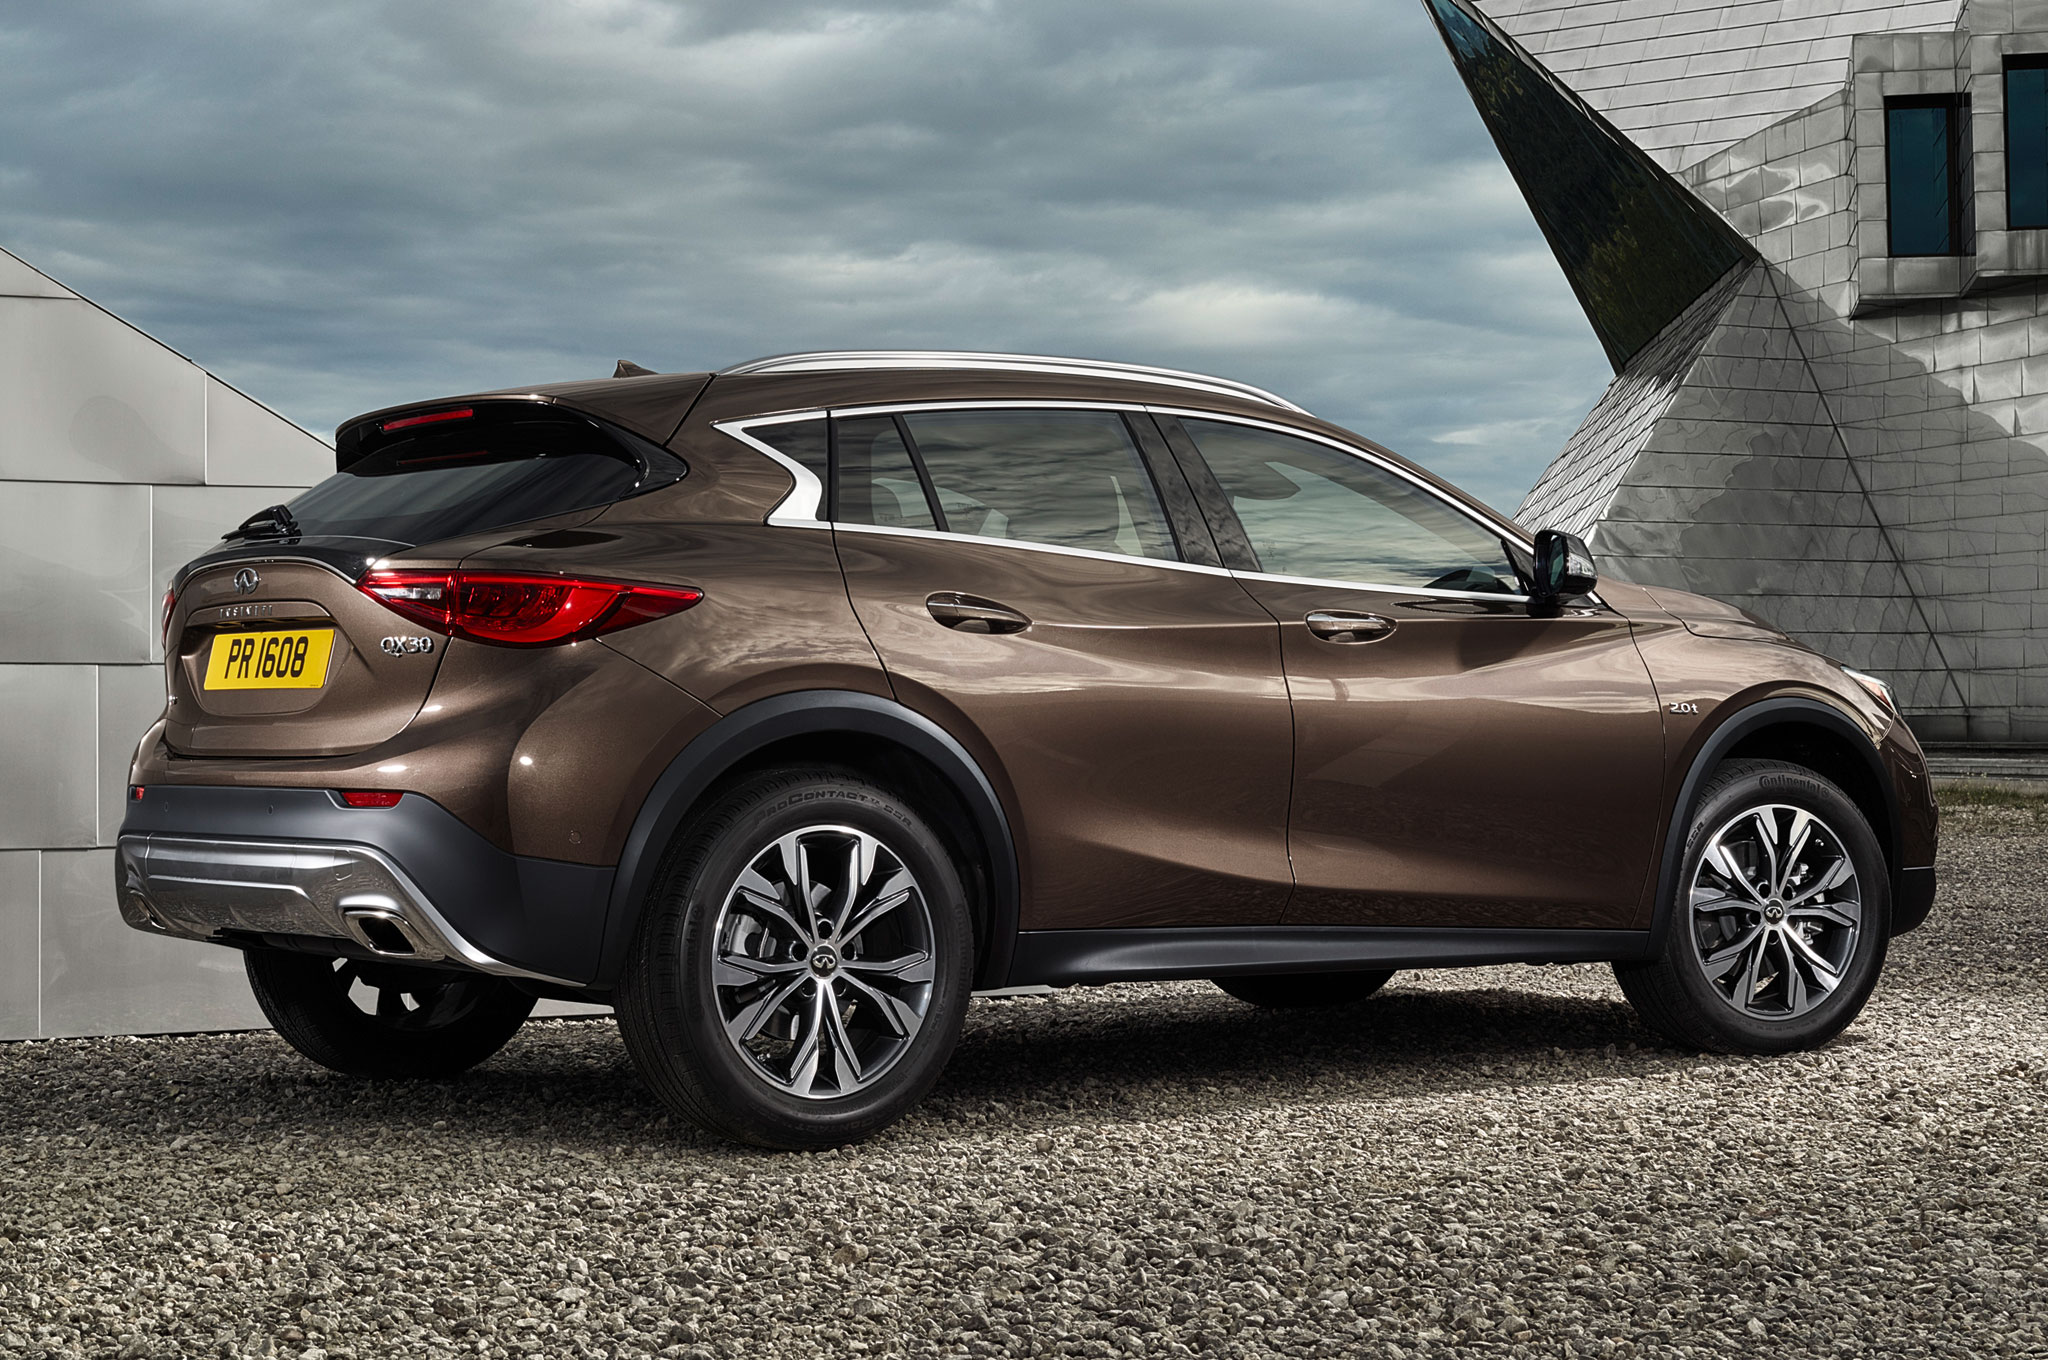 2017 Infiniti QX30 Luxury Crossover Debuts at L.A. Auto Show